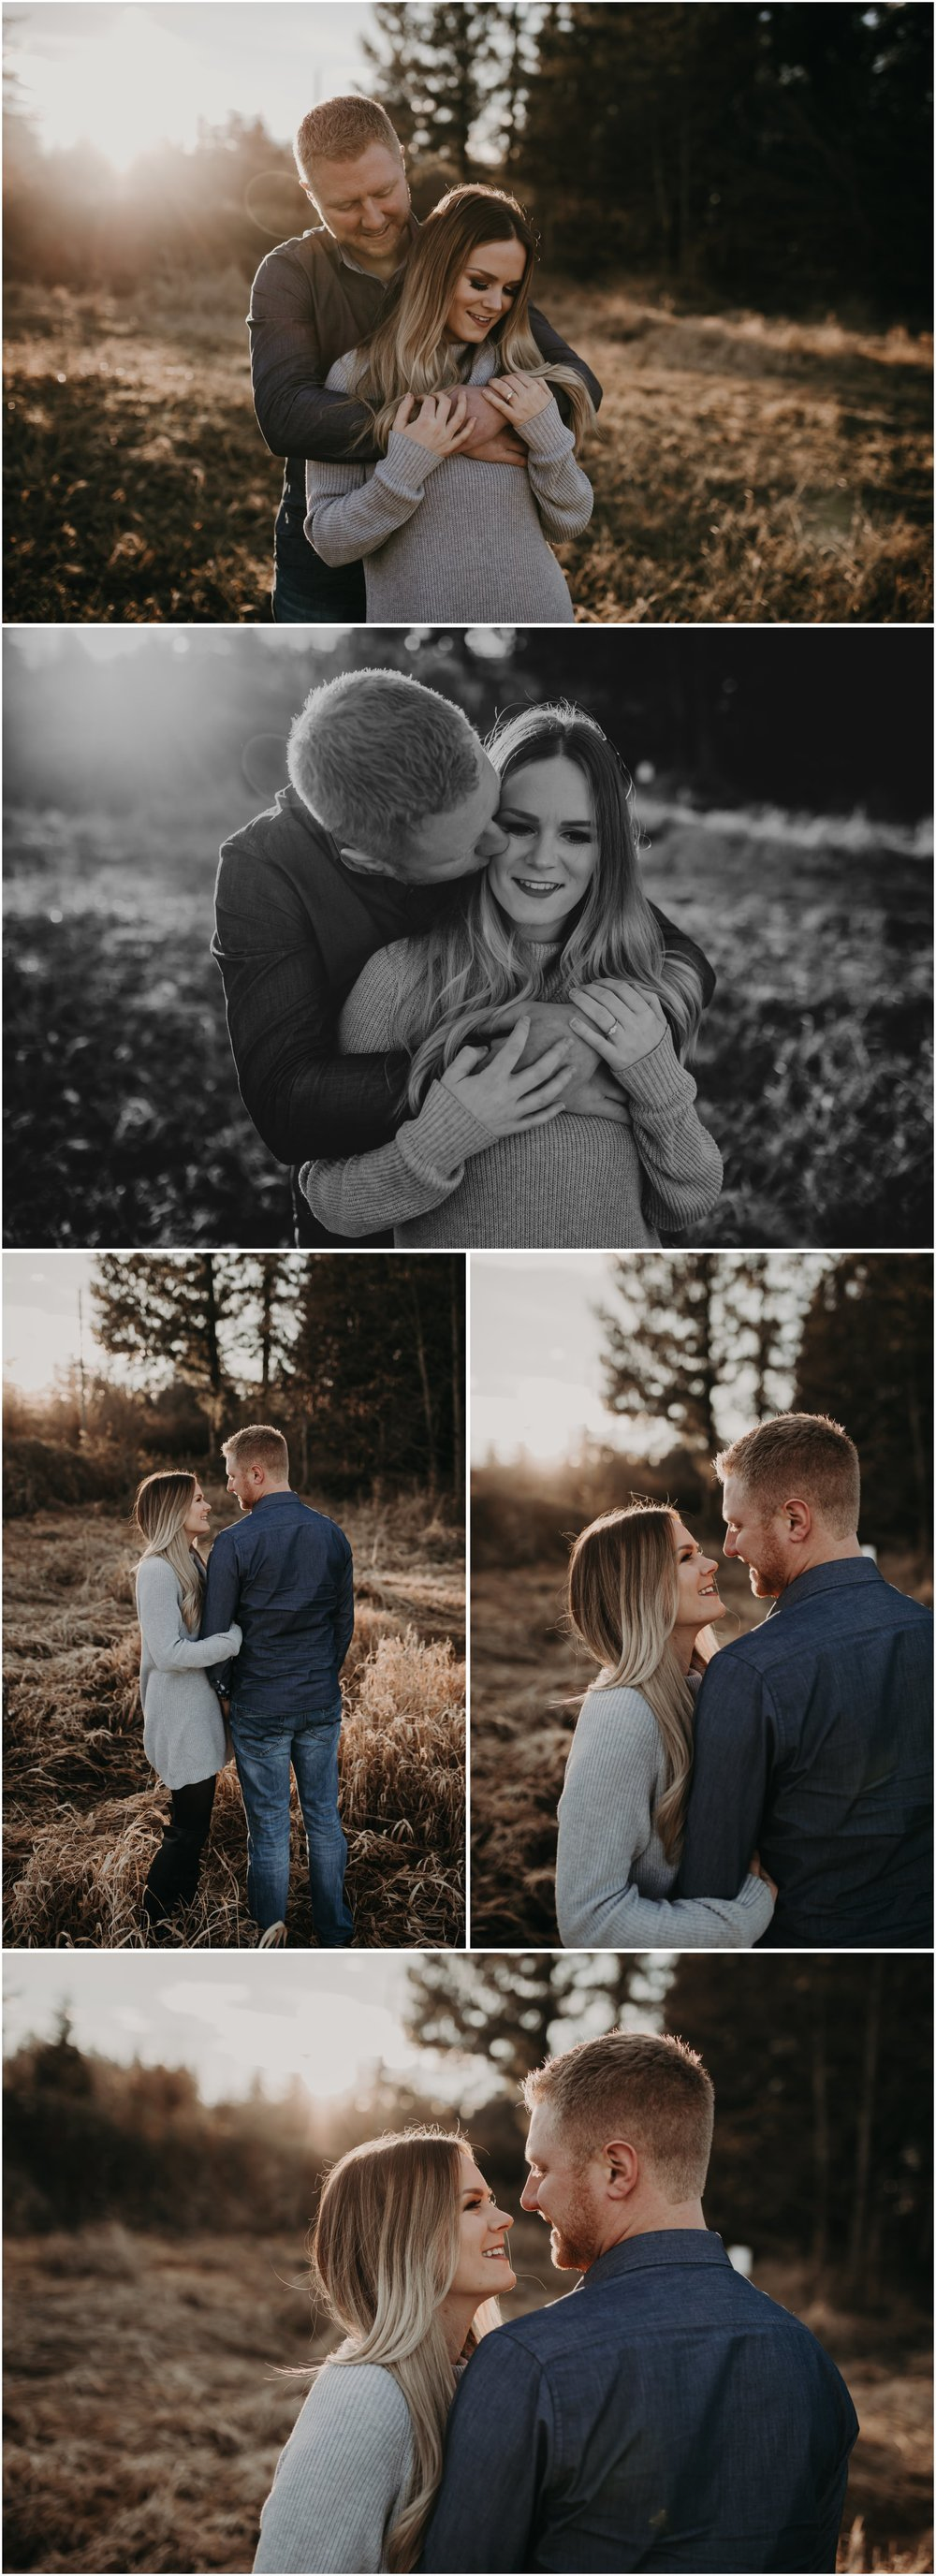 Cambell Valley Park Engagement Photography